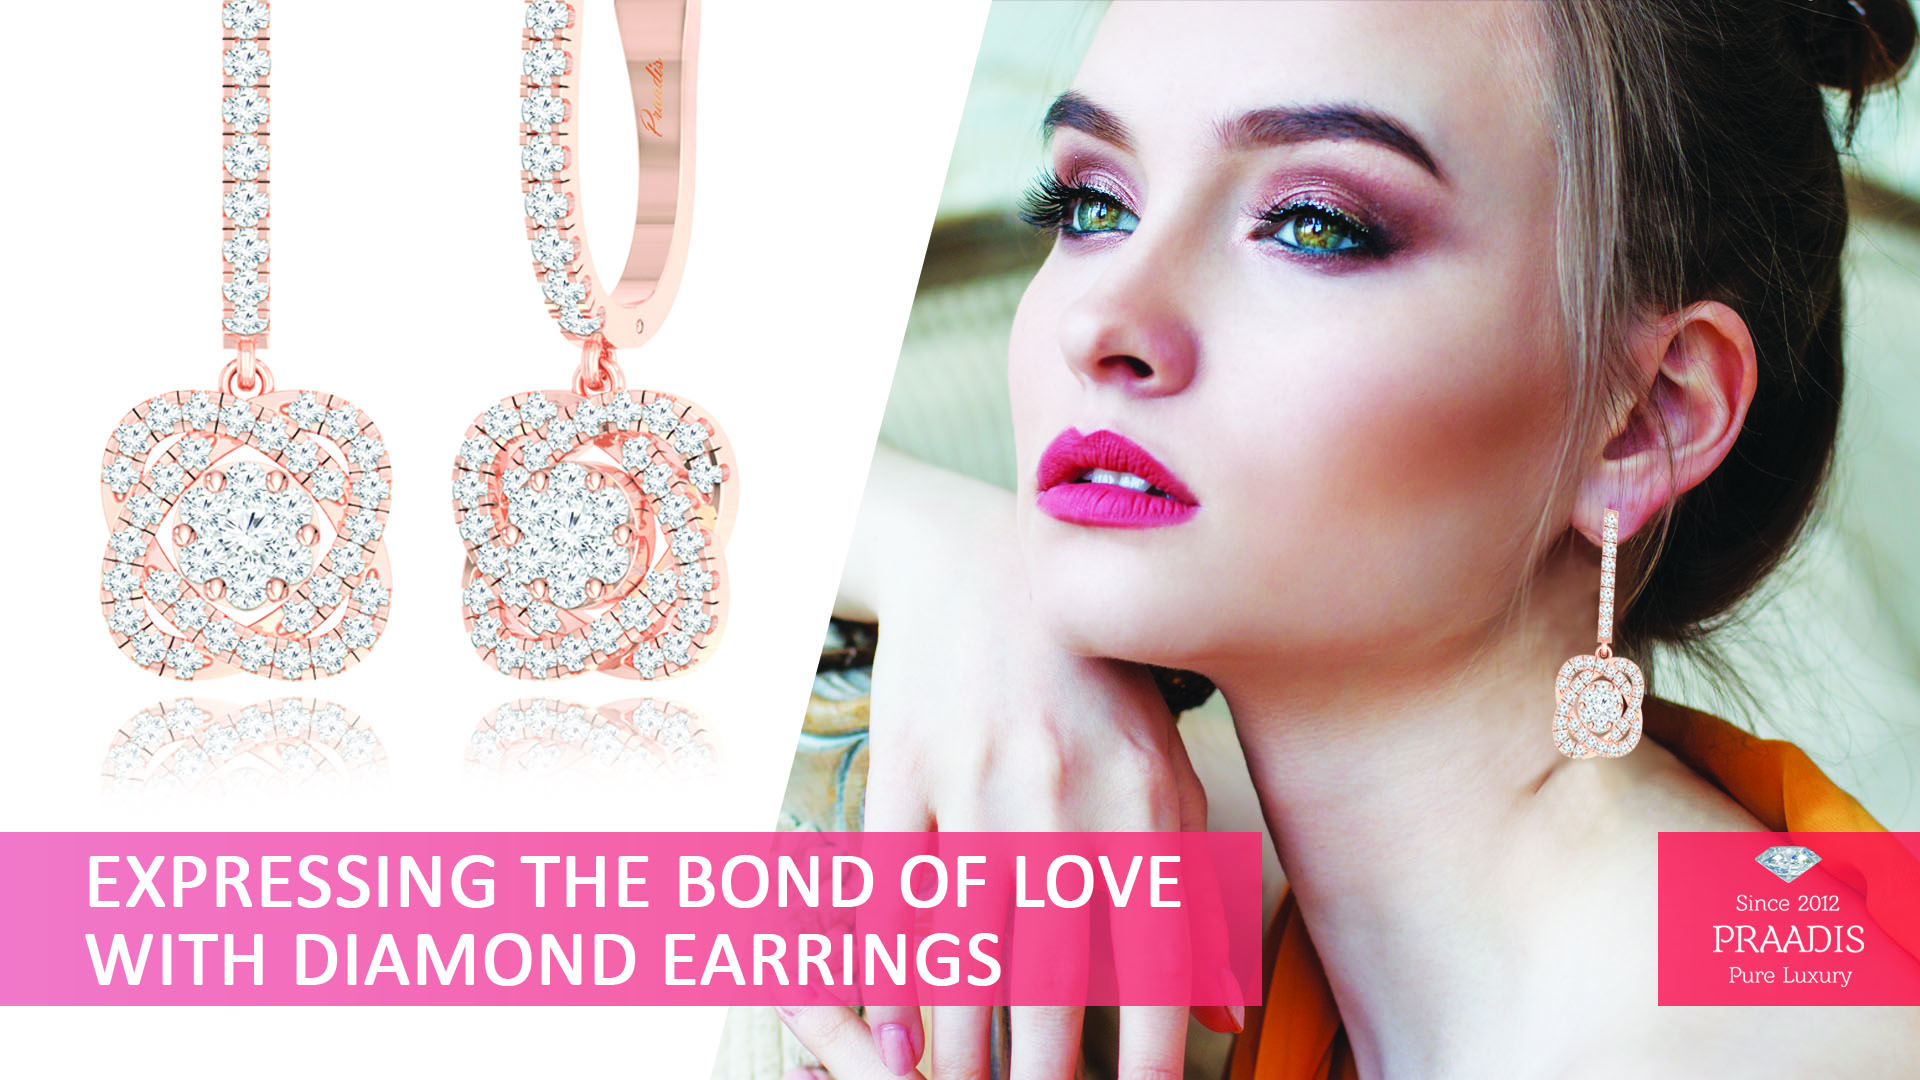 Expressing the Bond of Love with Diamond Earrings